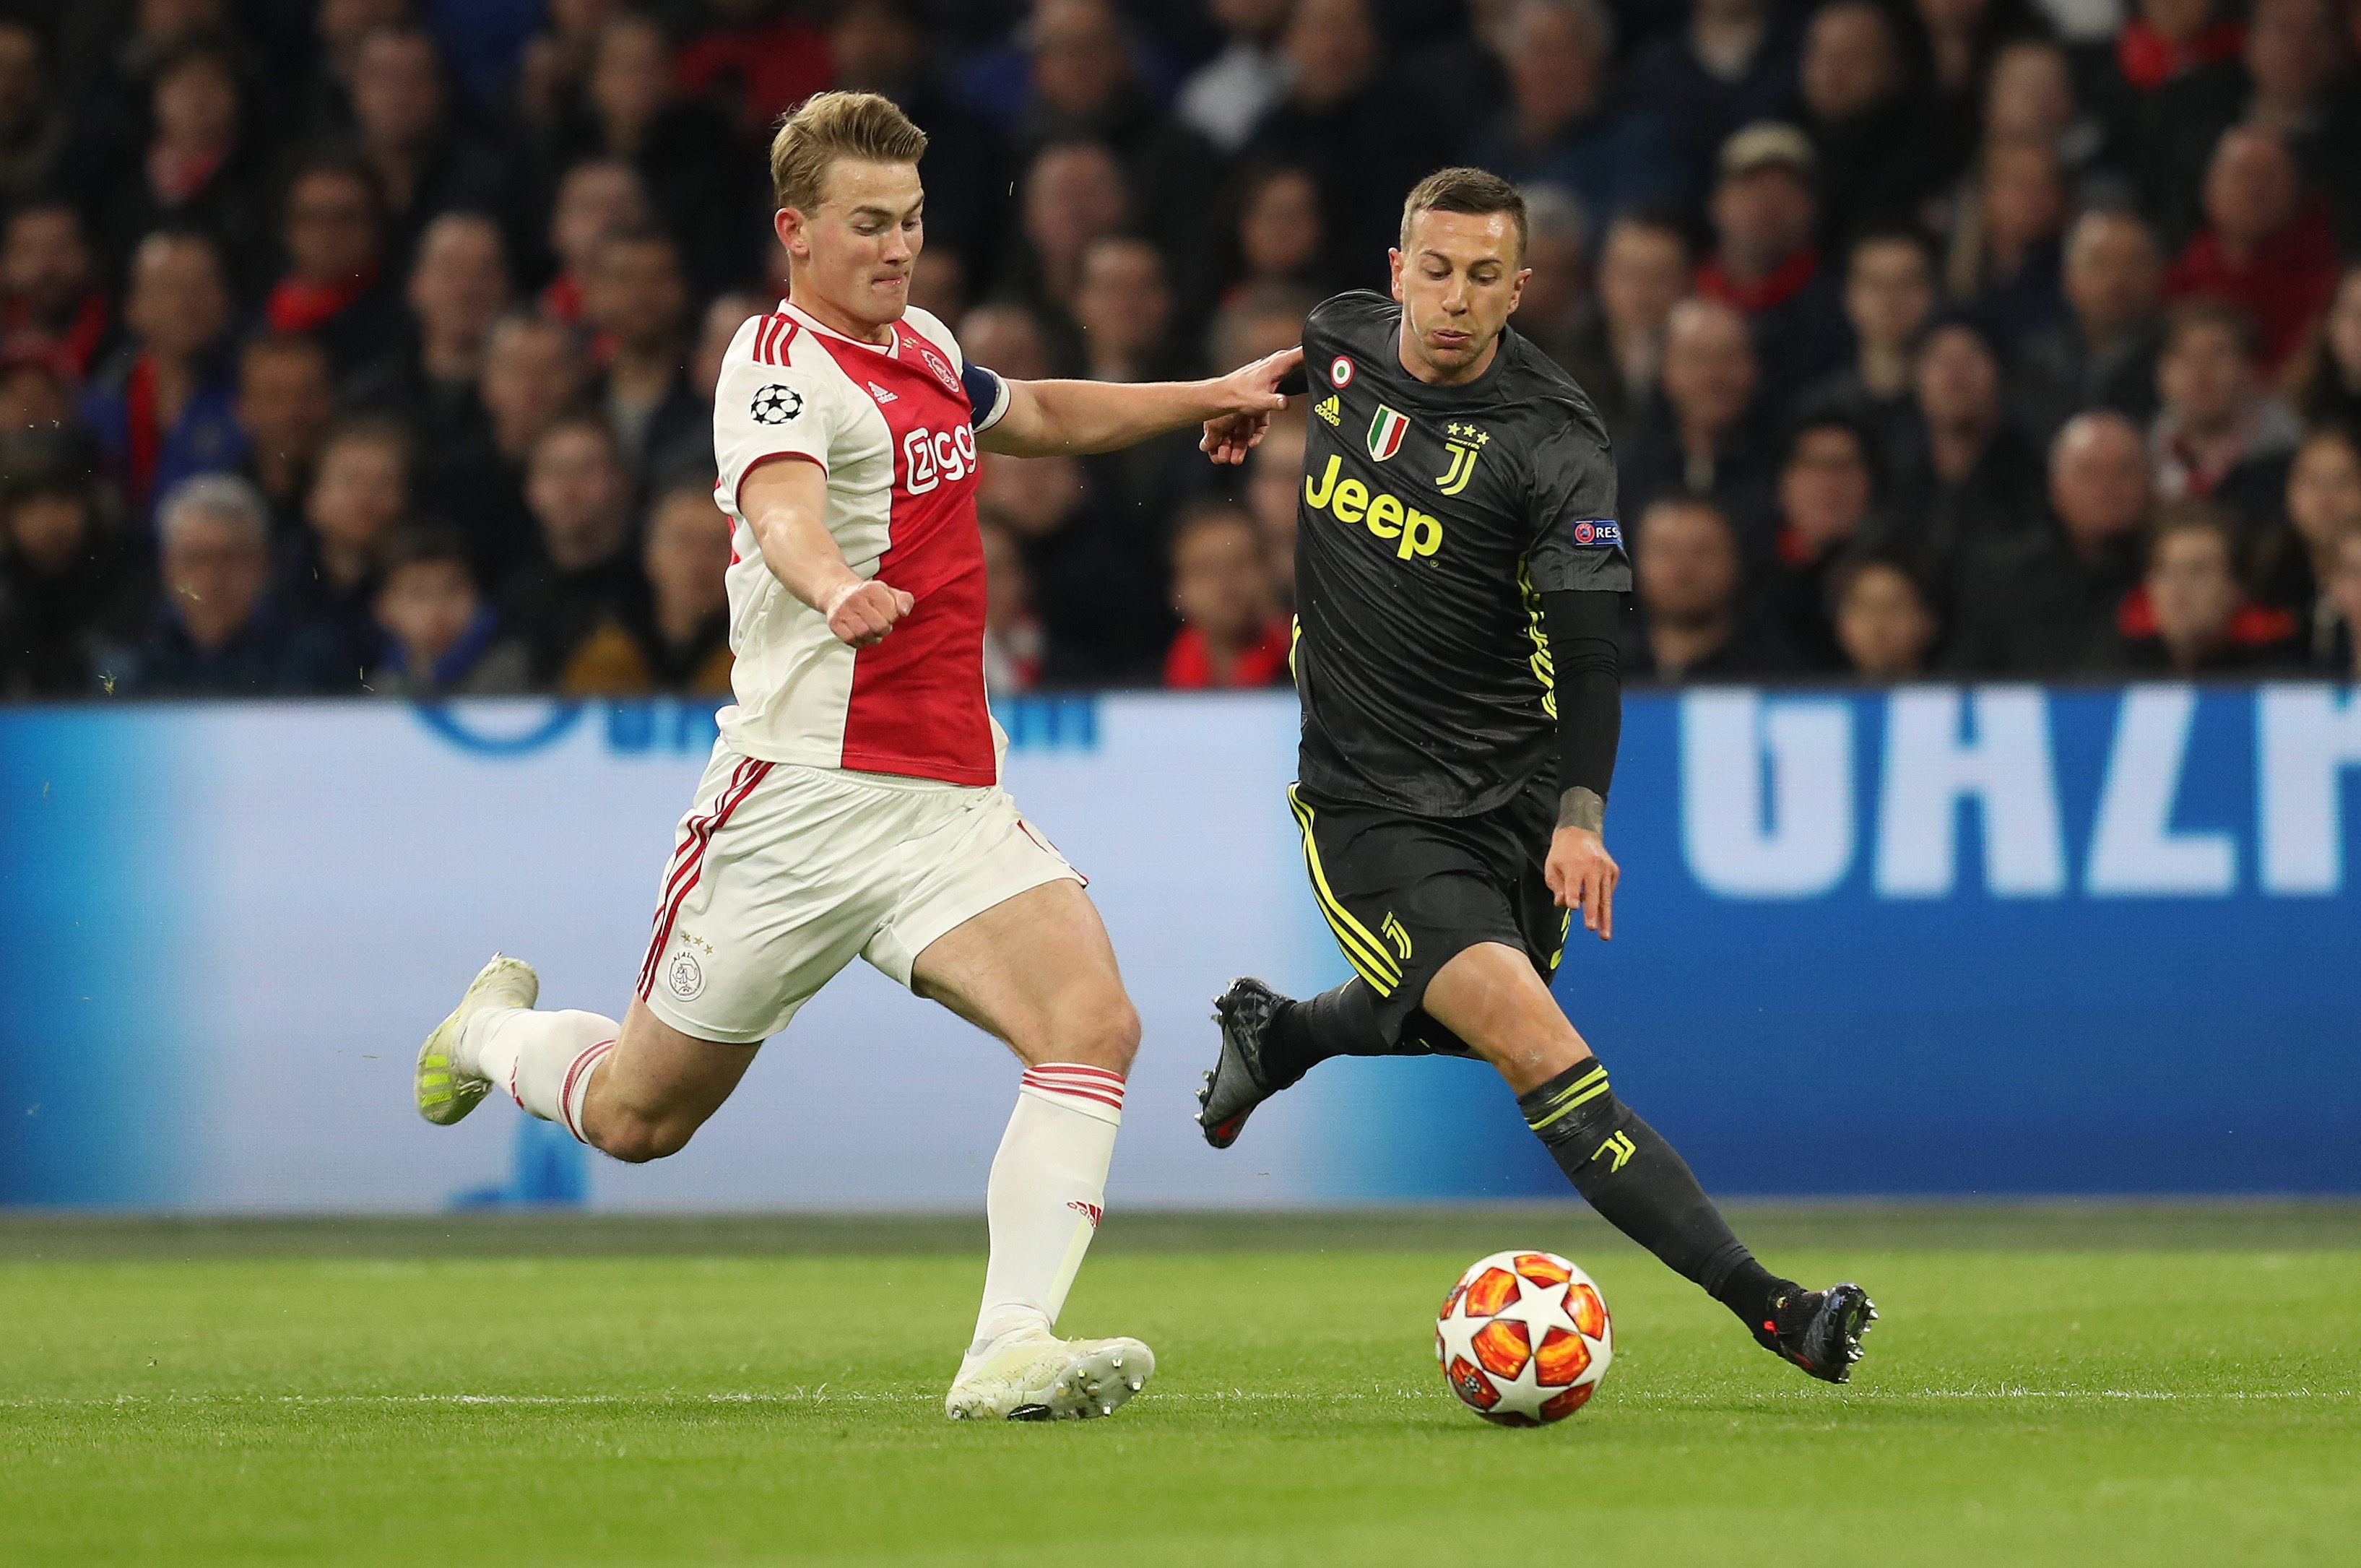 Matthijs de Ligt confirms stance on summer move amid interest